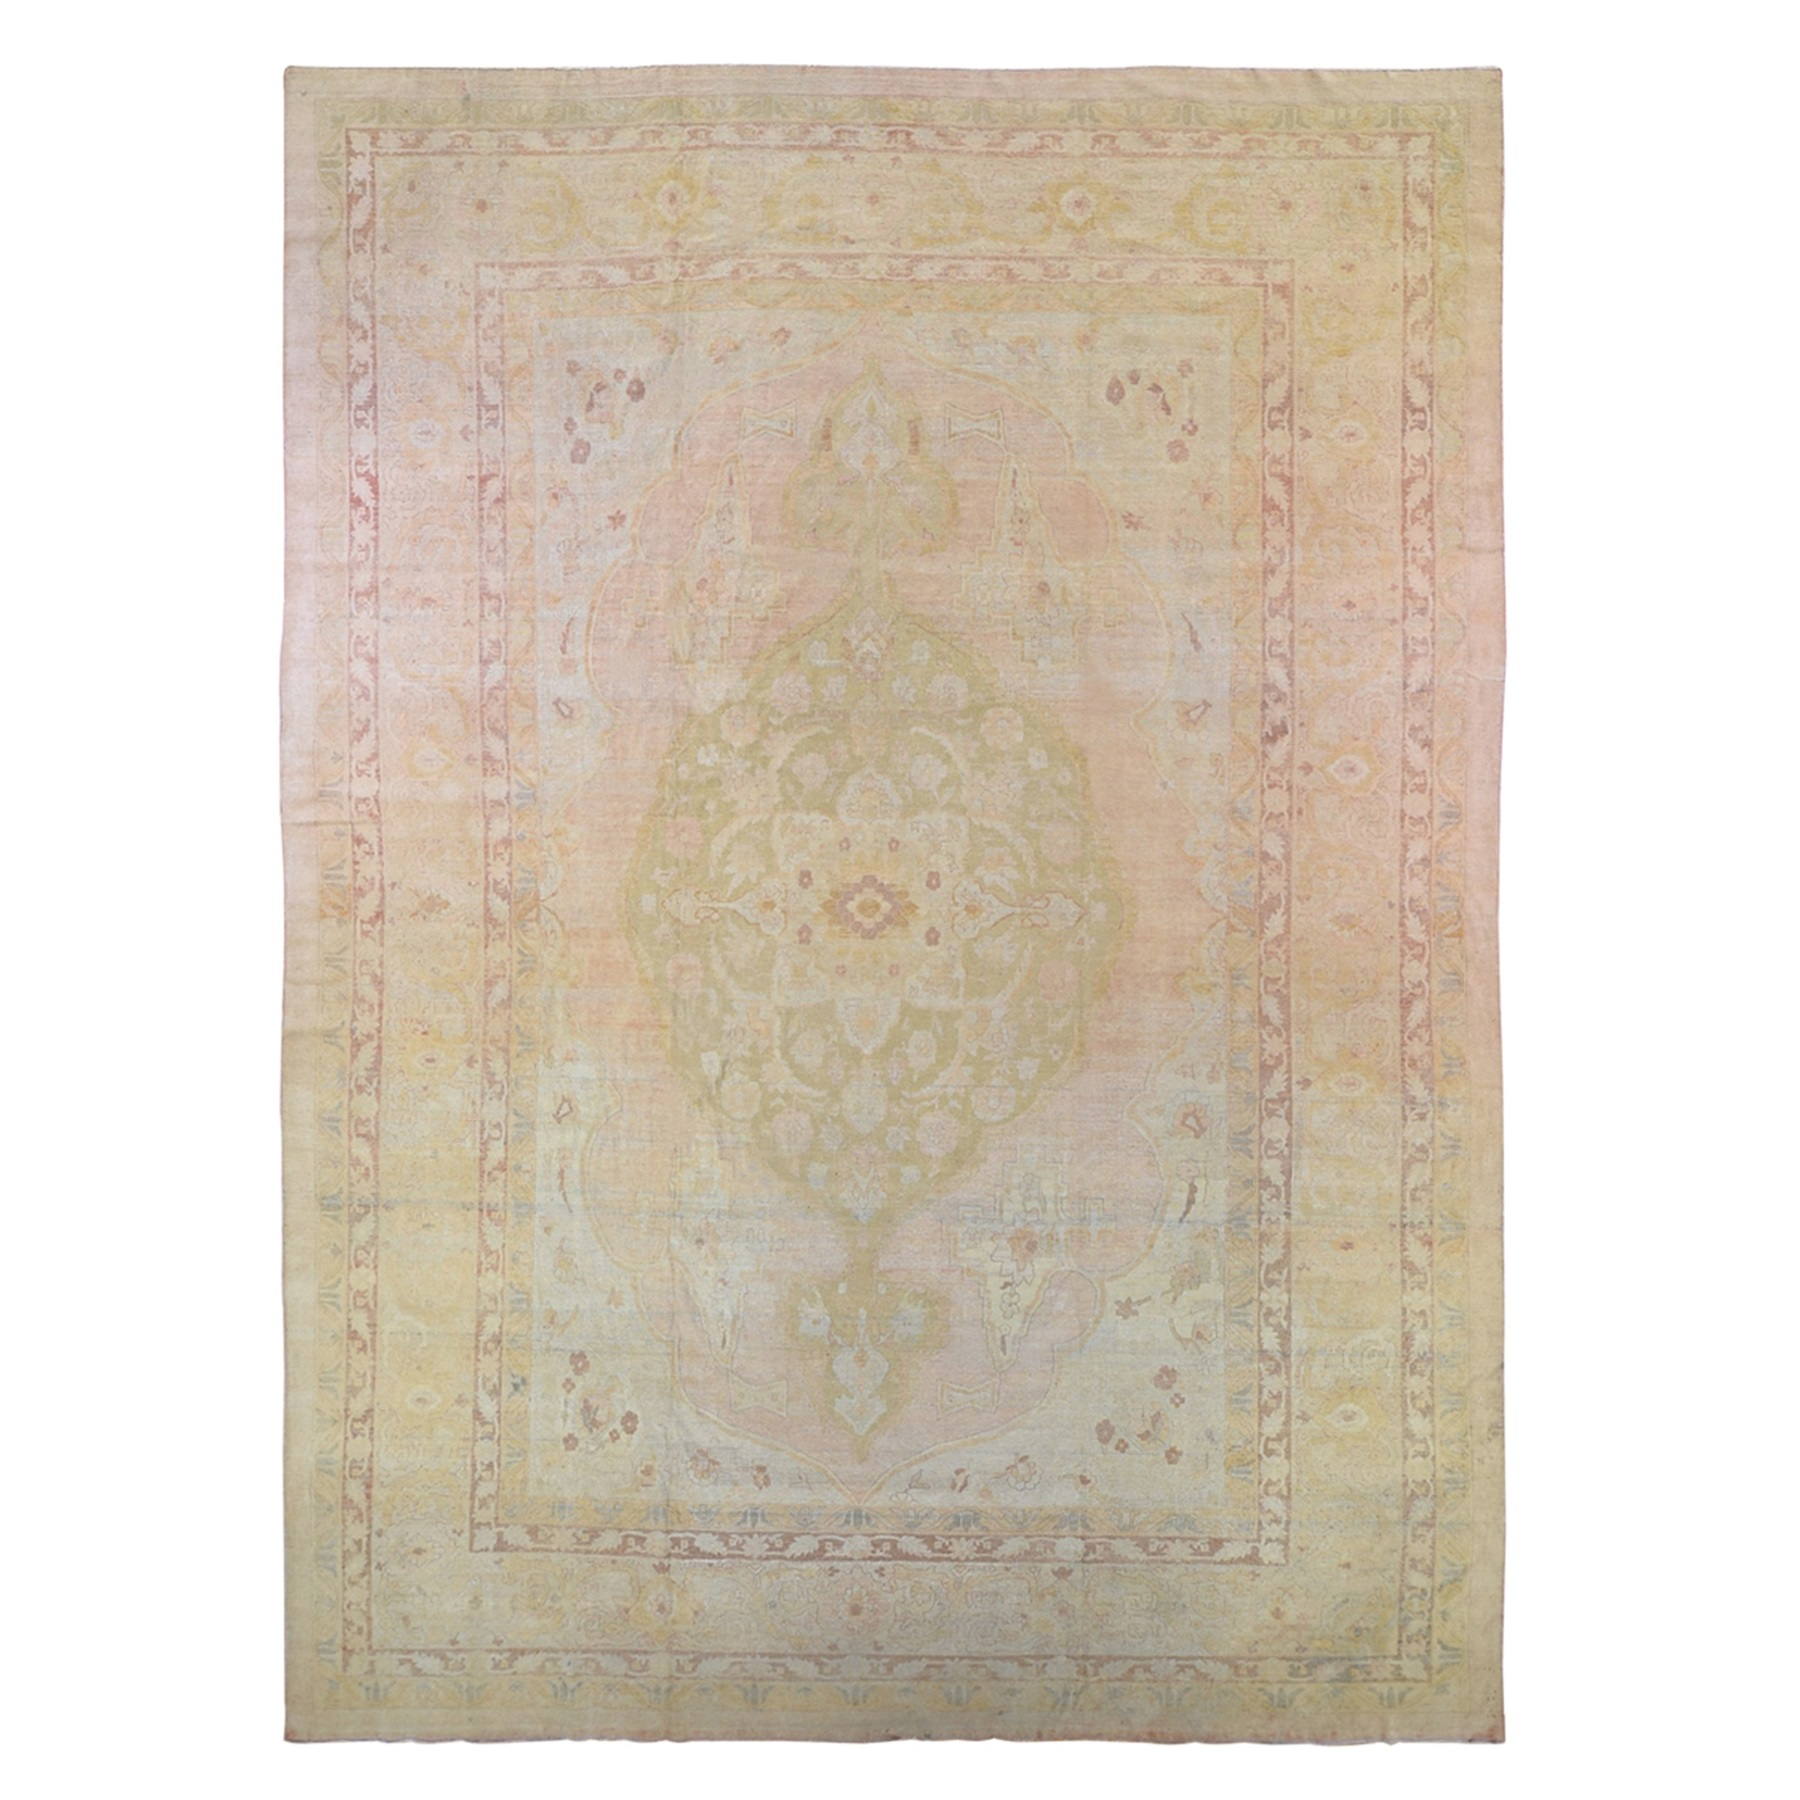 Antique Rugs LUV598545